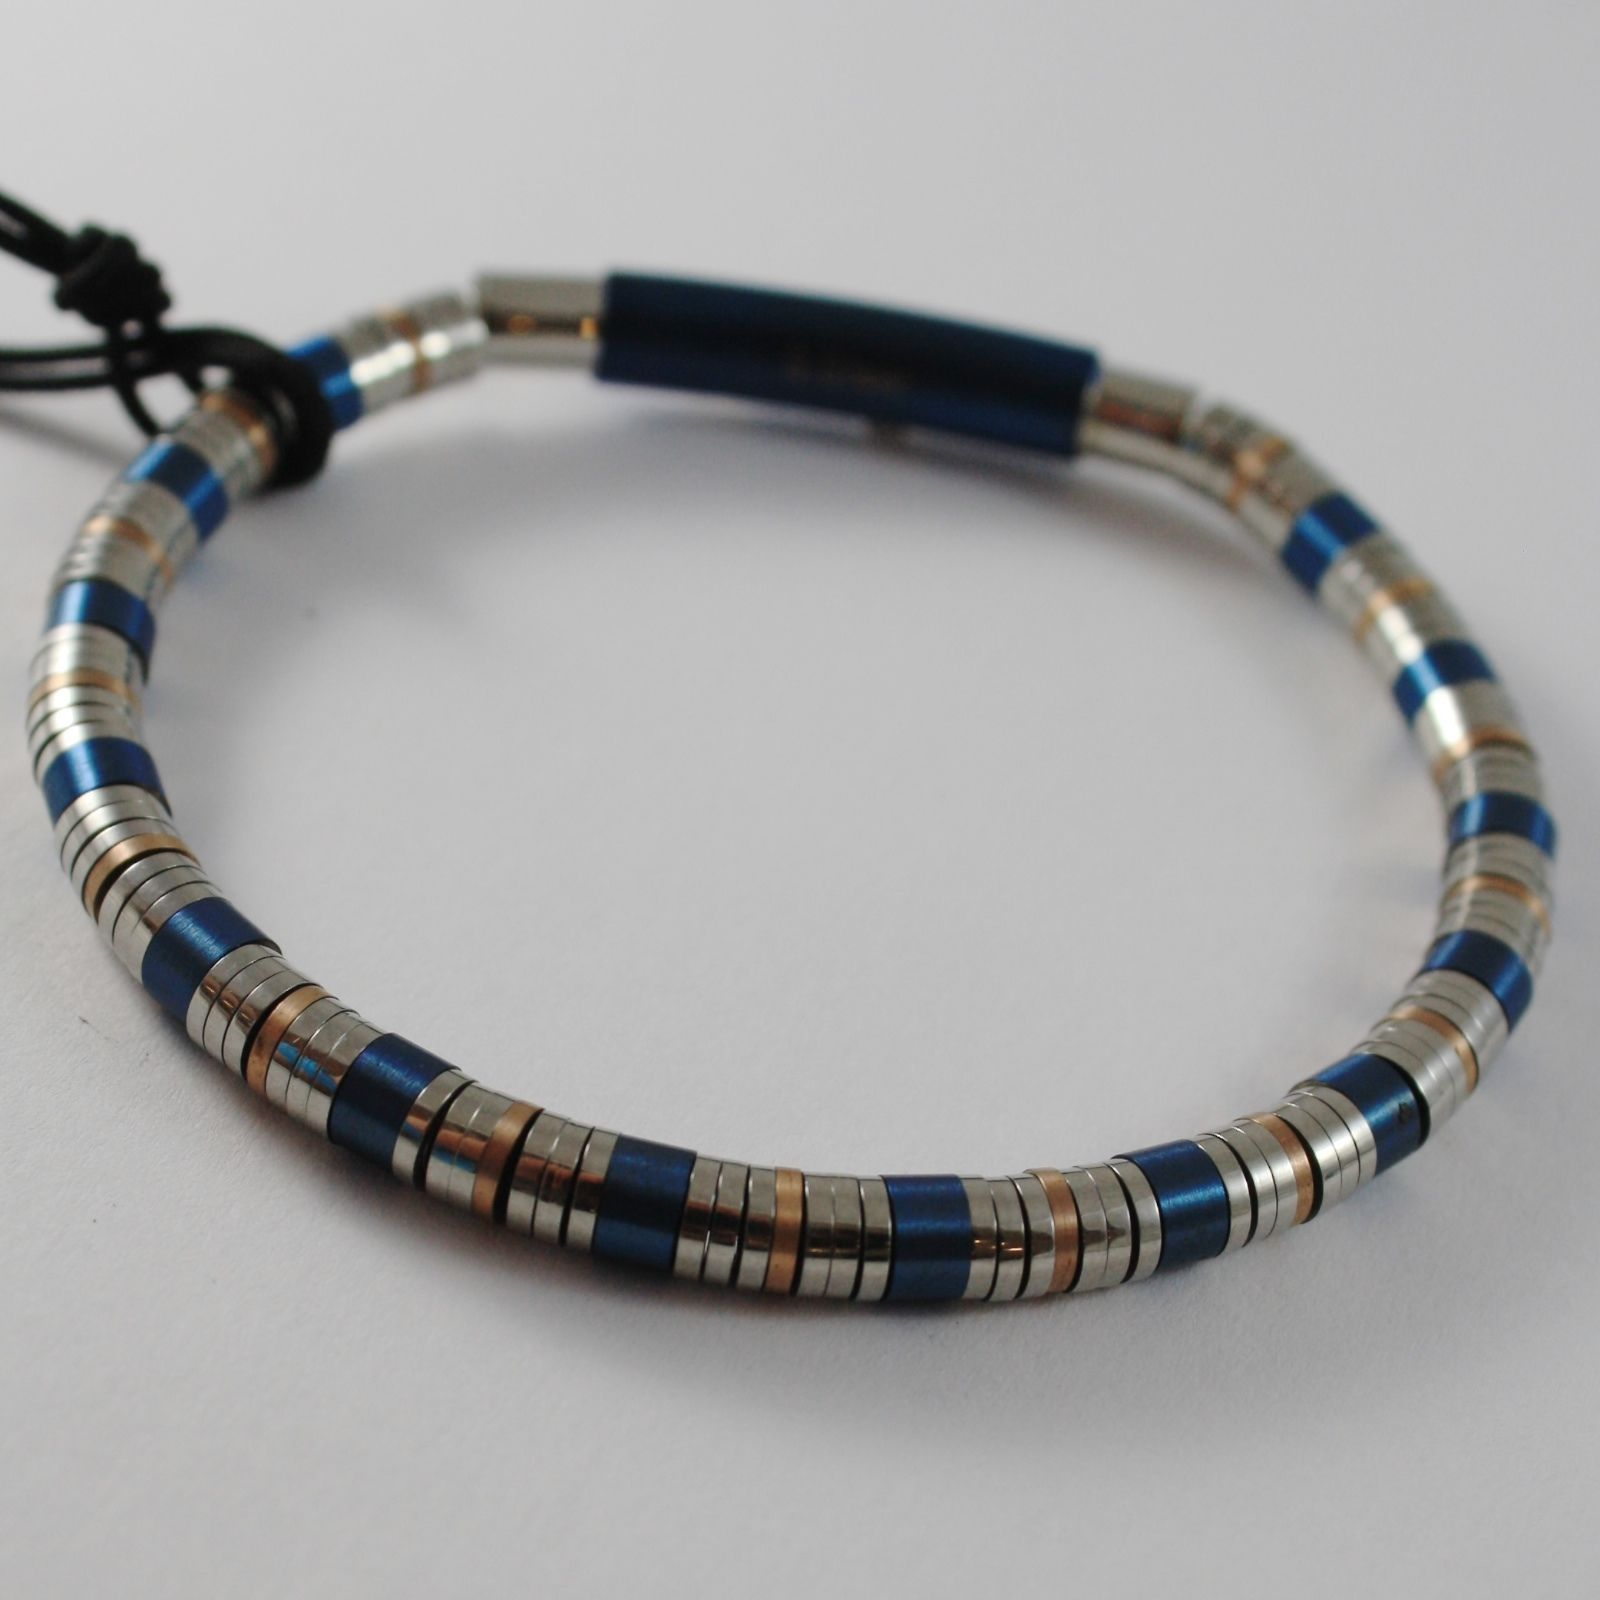 STAINLESS BLUE WHITE & ROSE STEEL TUBE DISCS BRACELET, 4US BY CESARE PACIOTTI